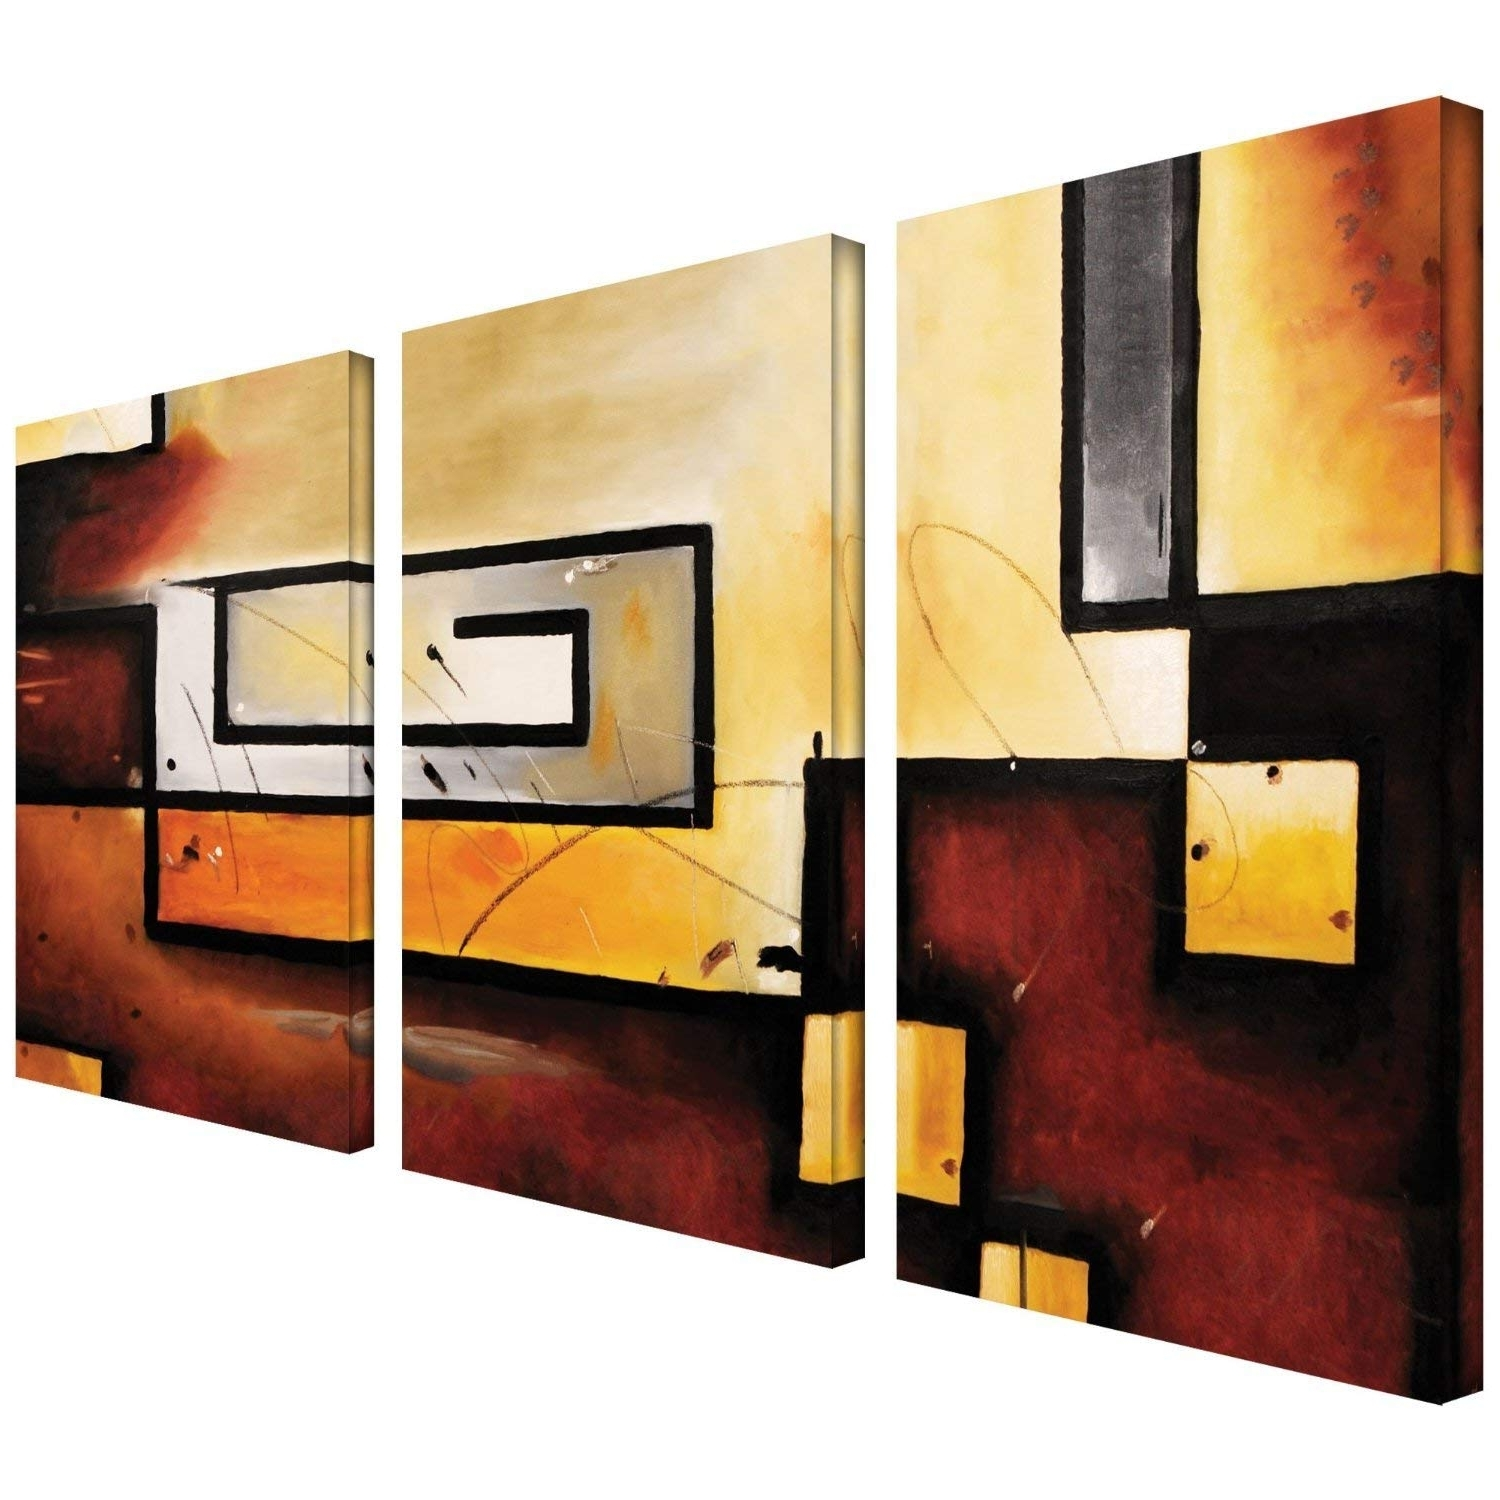 3 Piece Canvas Wall Art With Regard To Newest Amazon: Art Wall 3 Piece Abstract Modern Gallery Wrapped Canvas (View 2 of 15)